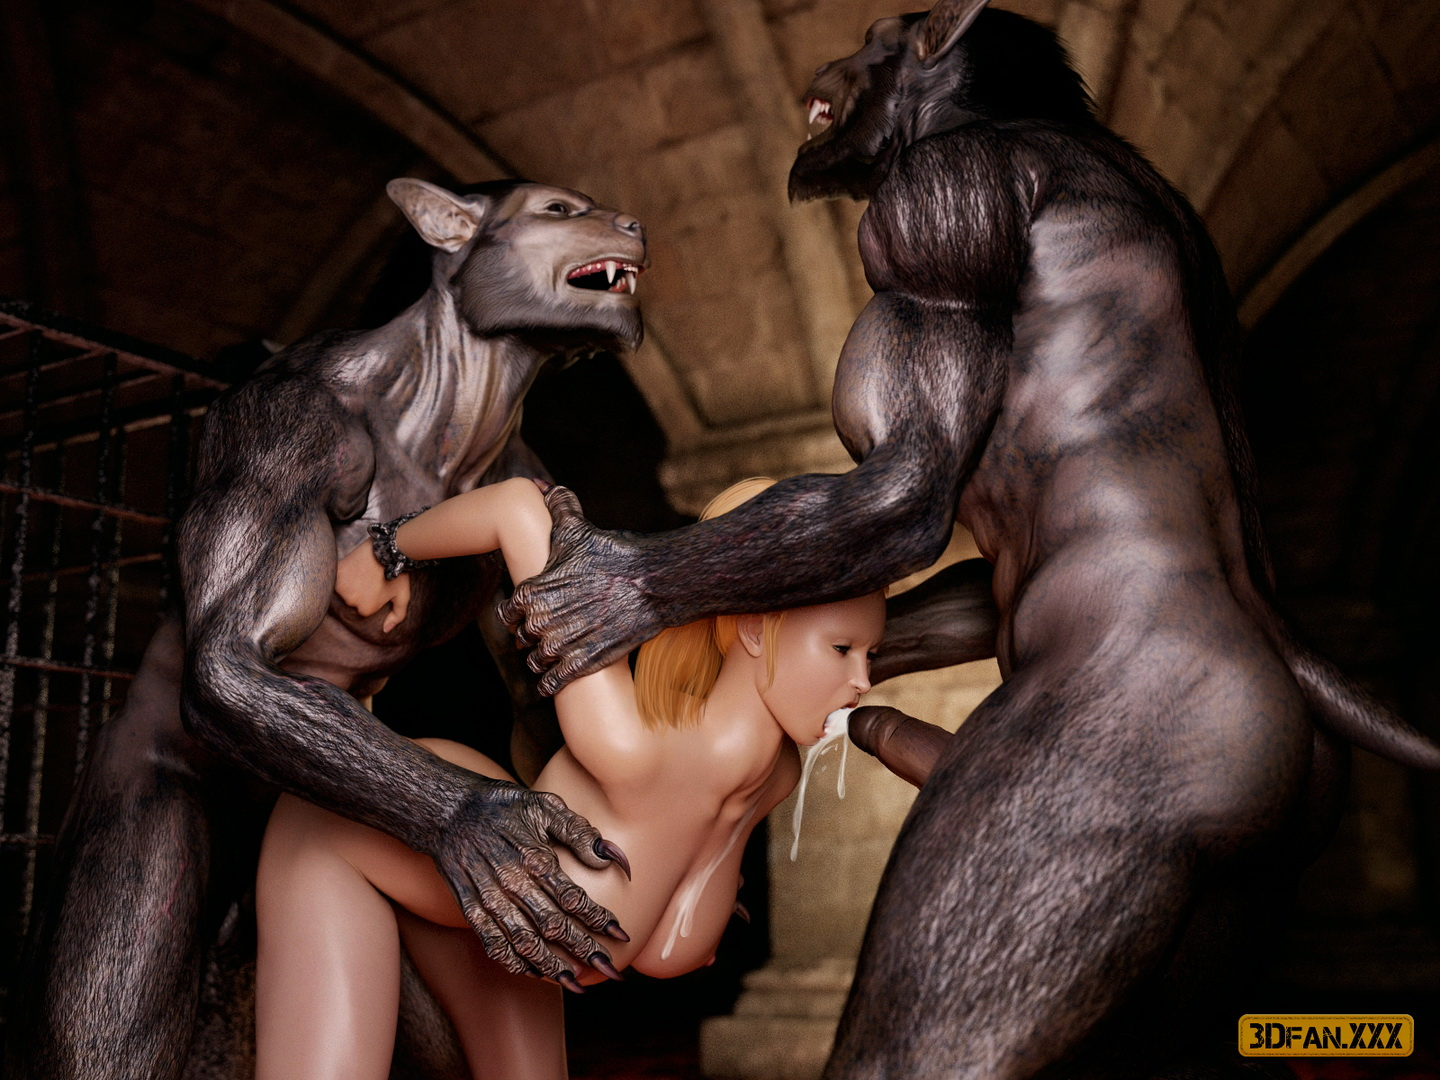 Free download 3d monster porn videos in  pornos movies